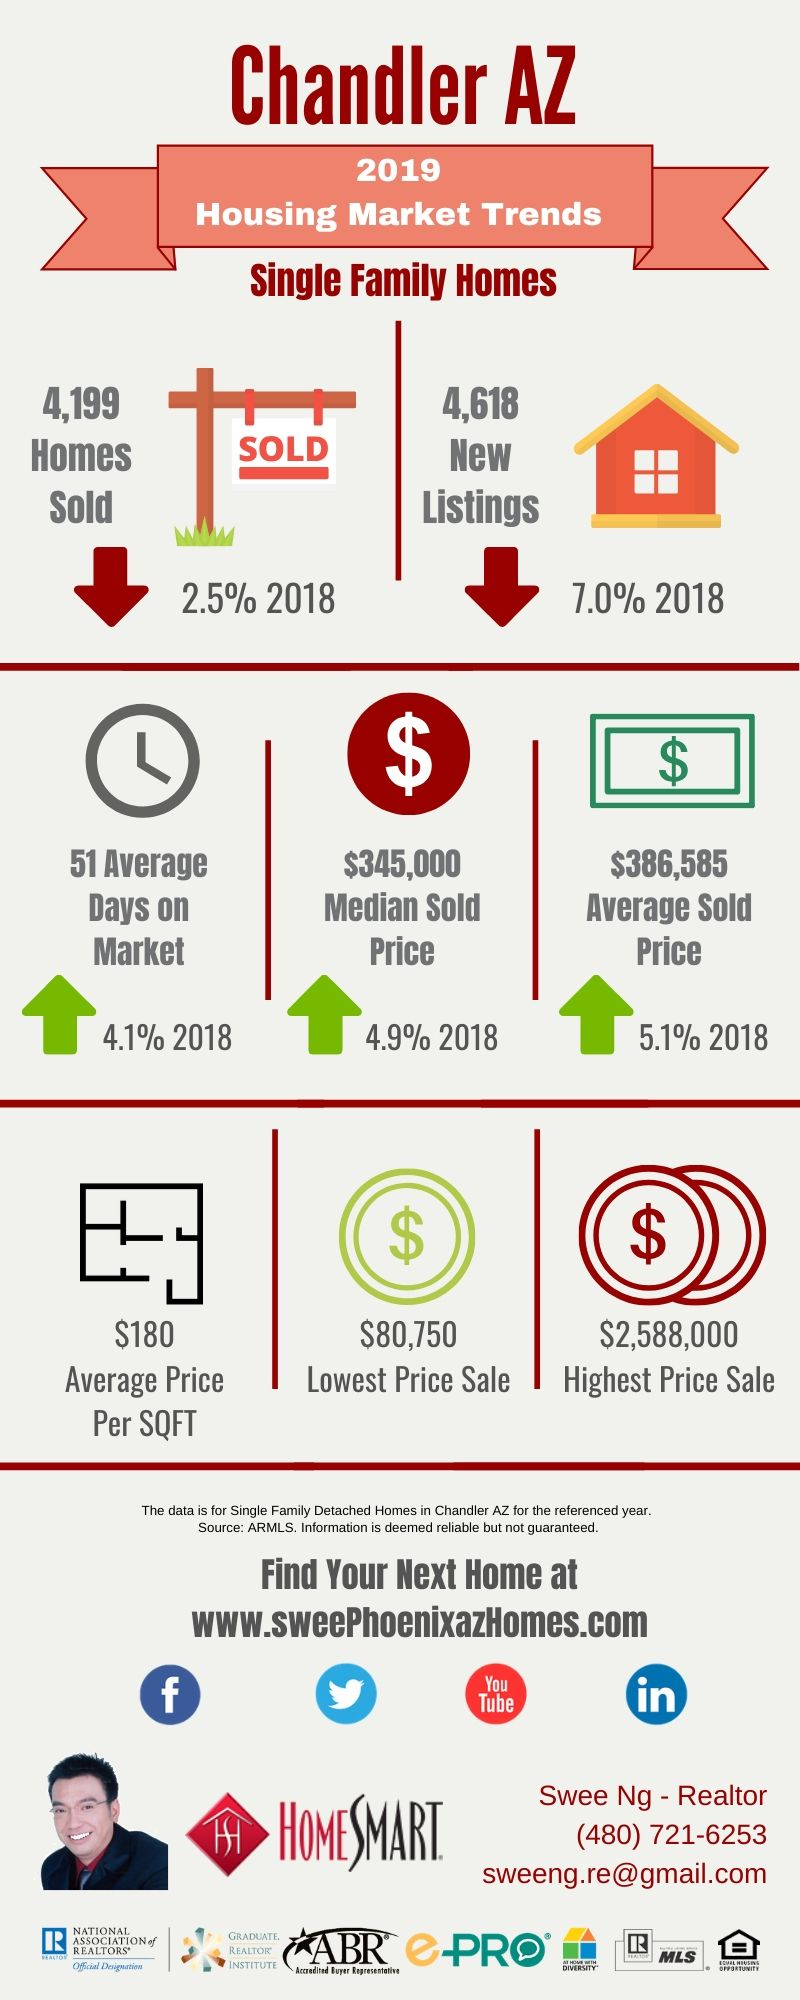 Chandler AZ Housing Market Update 2019 by Swee Ng, House Value and Real Estate Listings